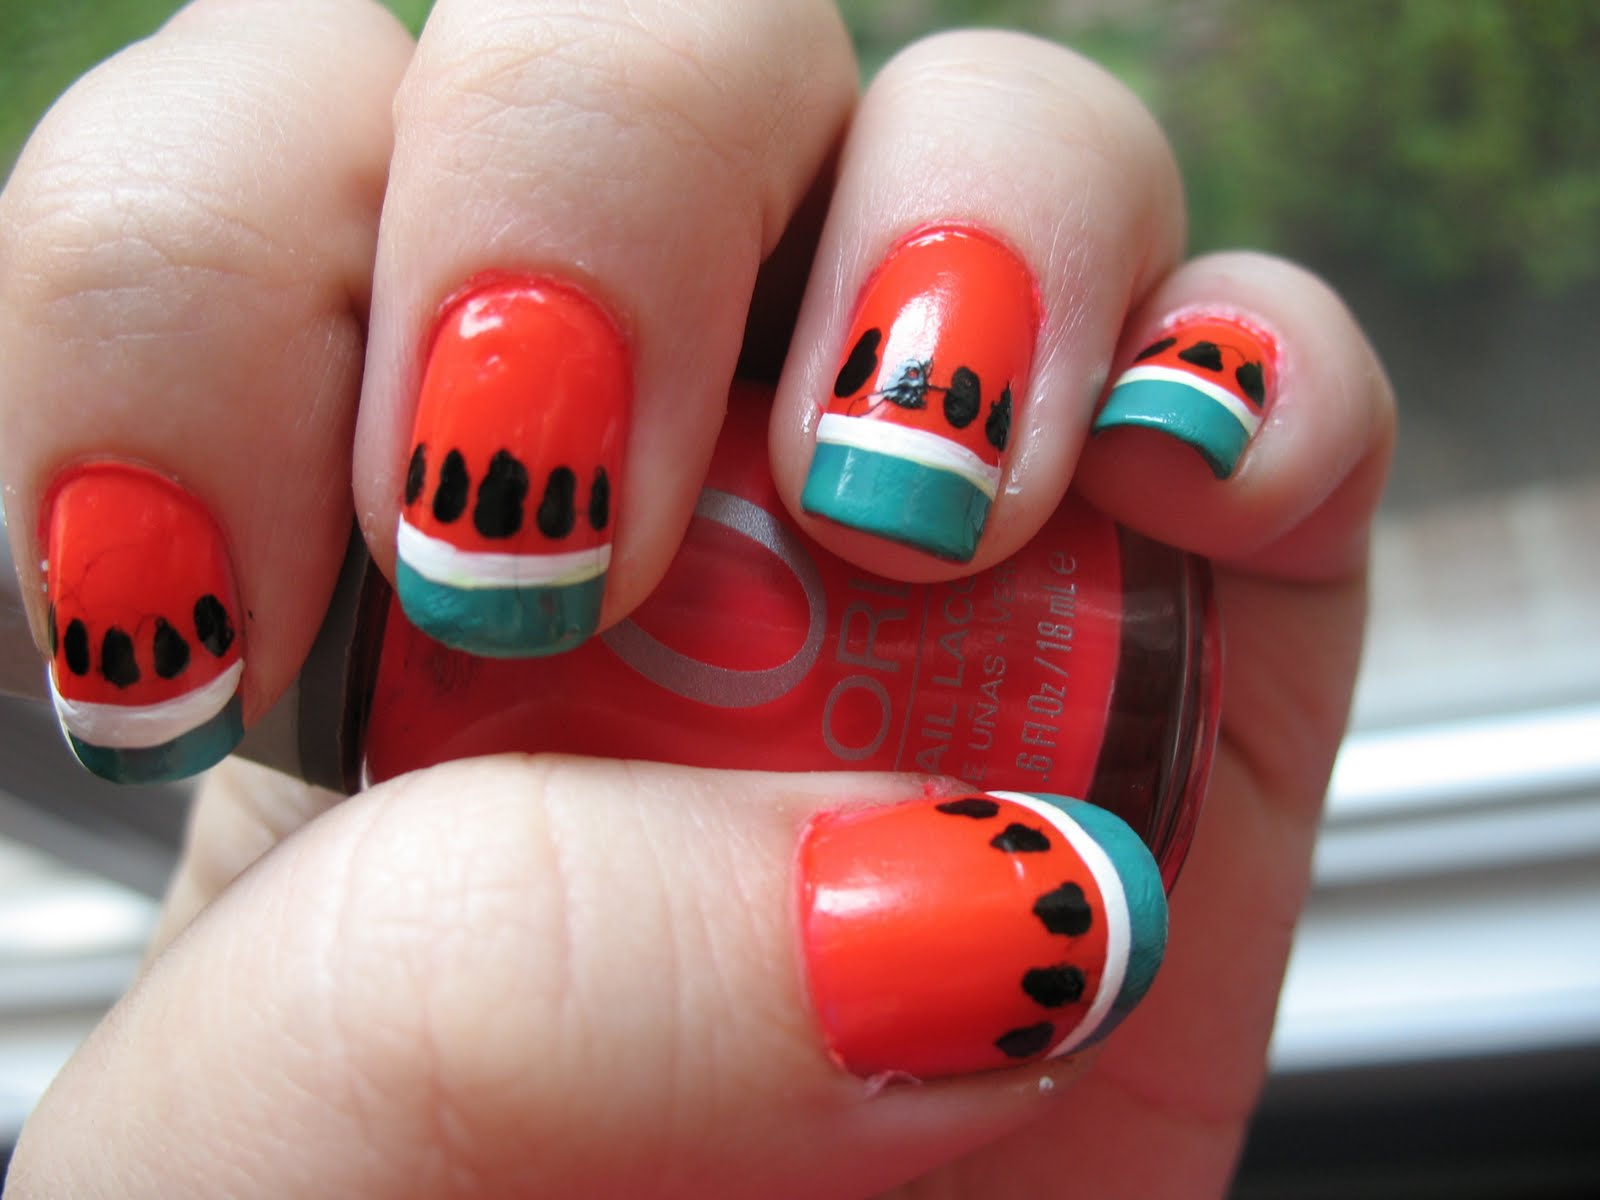 Nail art design 2014 collection of fruit nail art prinsesfo Image collections